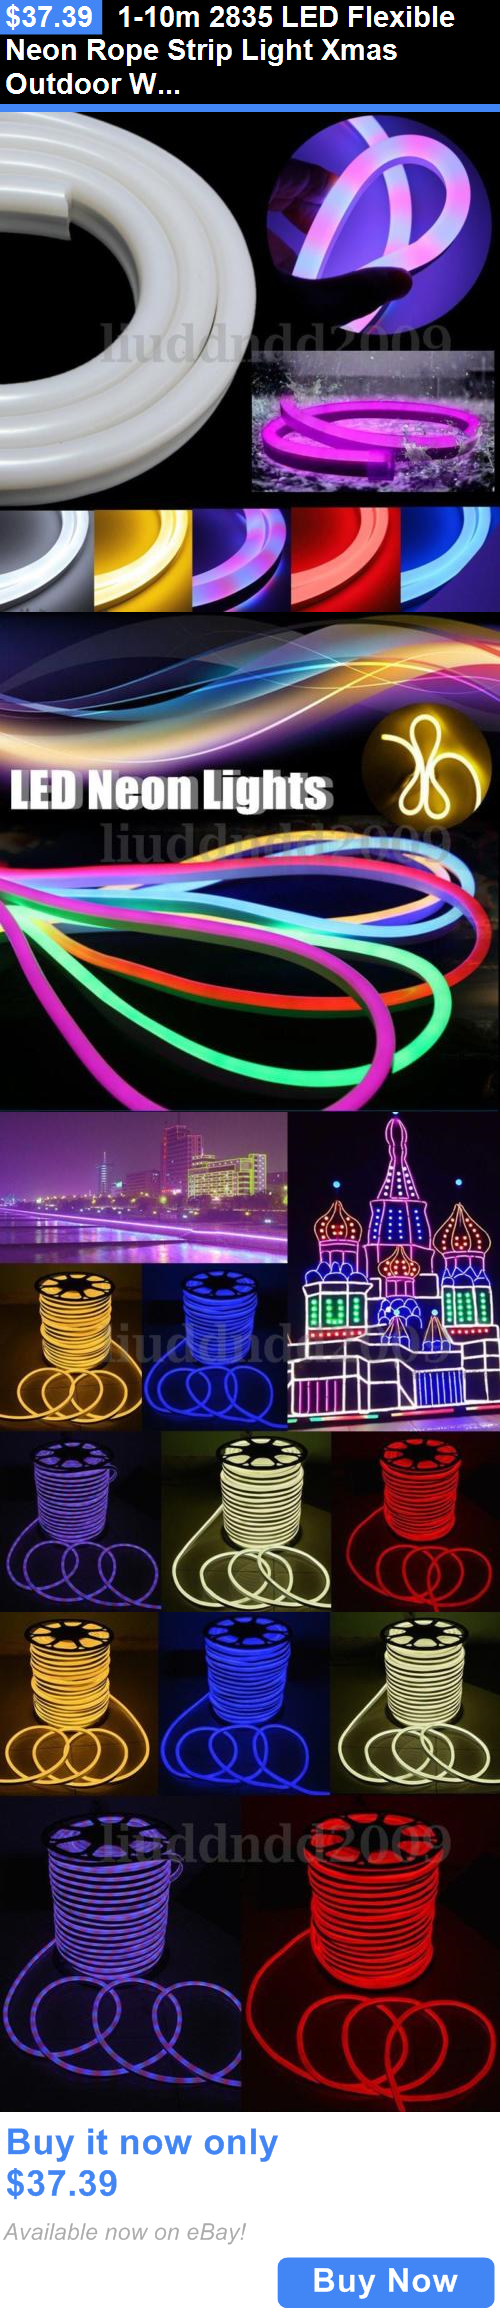 L&s And Lighting 1-10M 2835 Led Flexible Neon Rope Strip Light Xmas Outdoor & Lamps And Lighting: 1-10M 2835 Led Flexible Neon Rope Strip Light ... azcodes.com